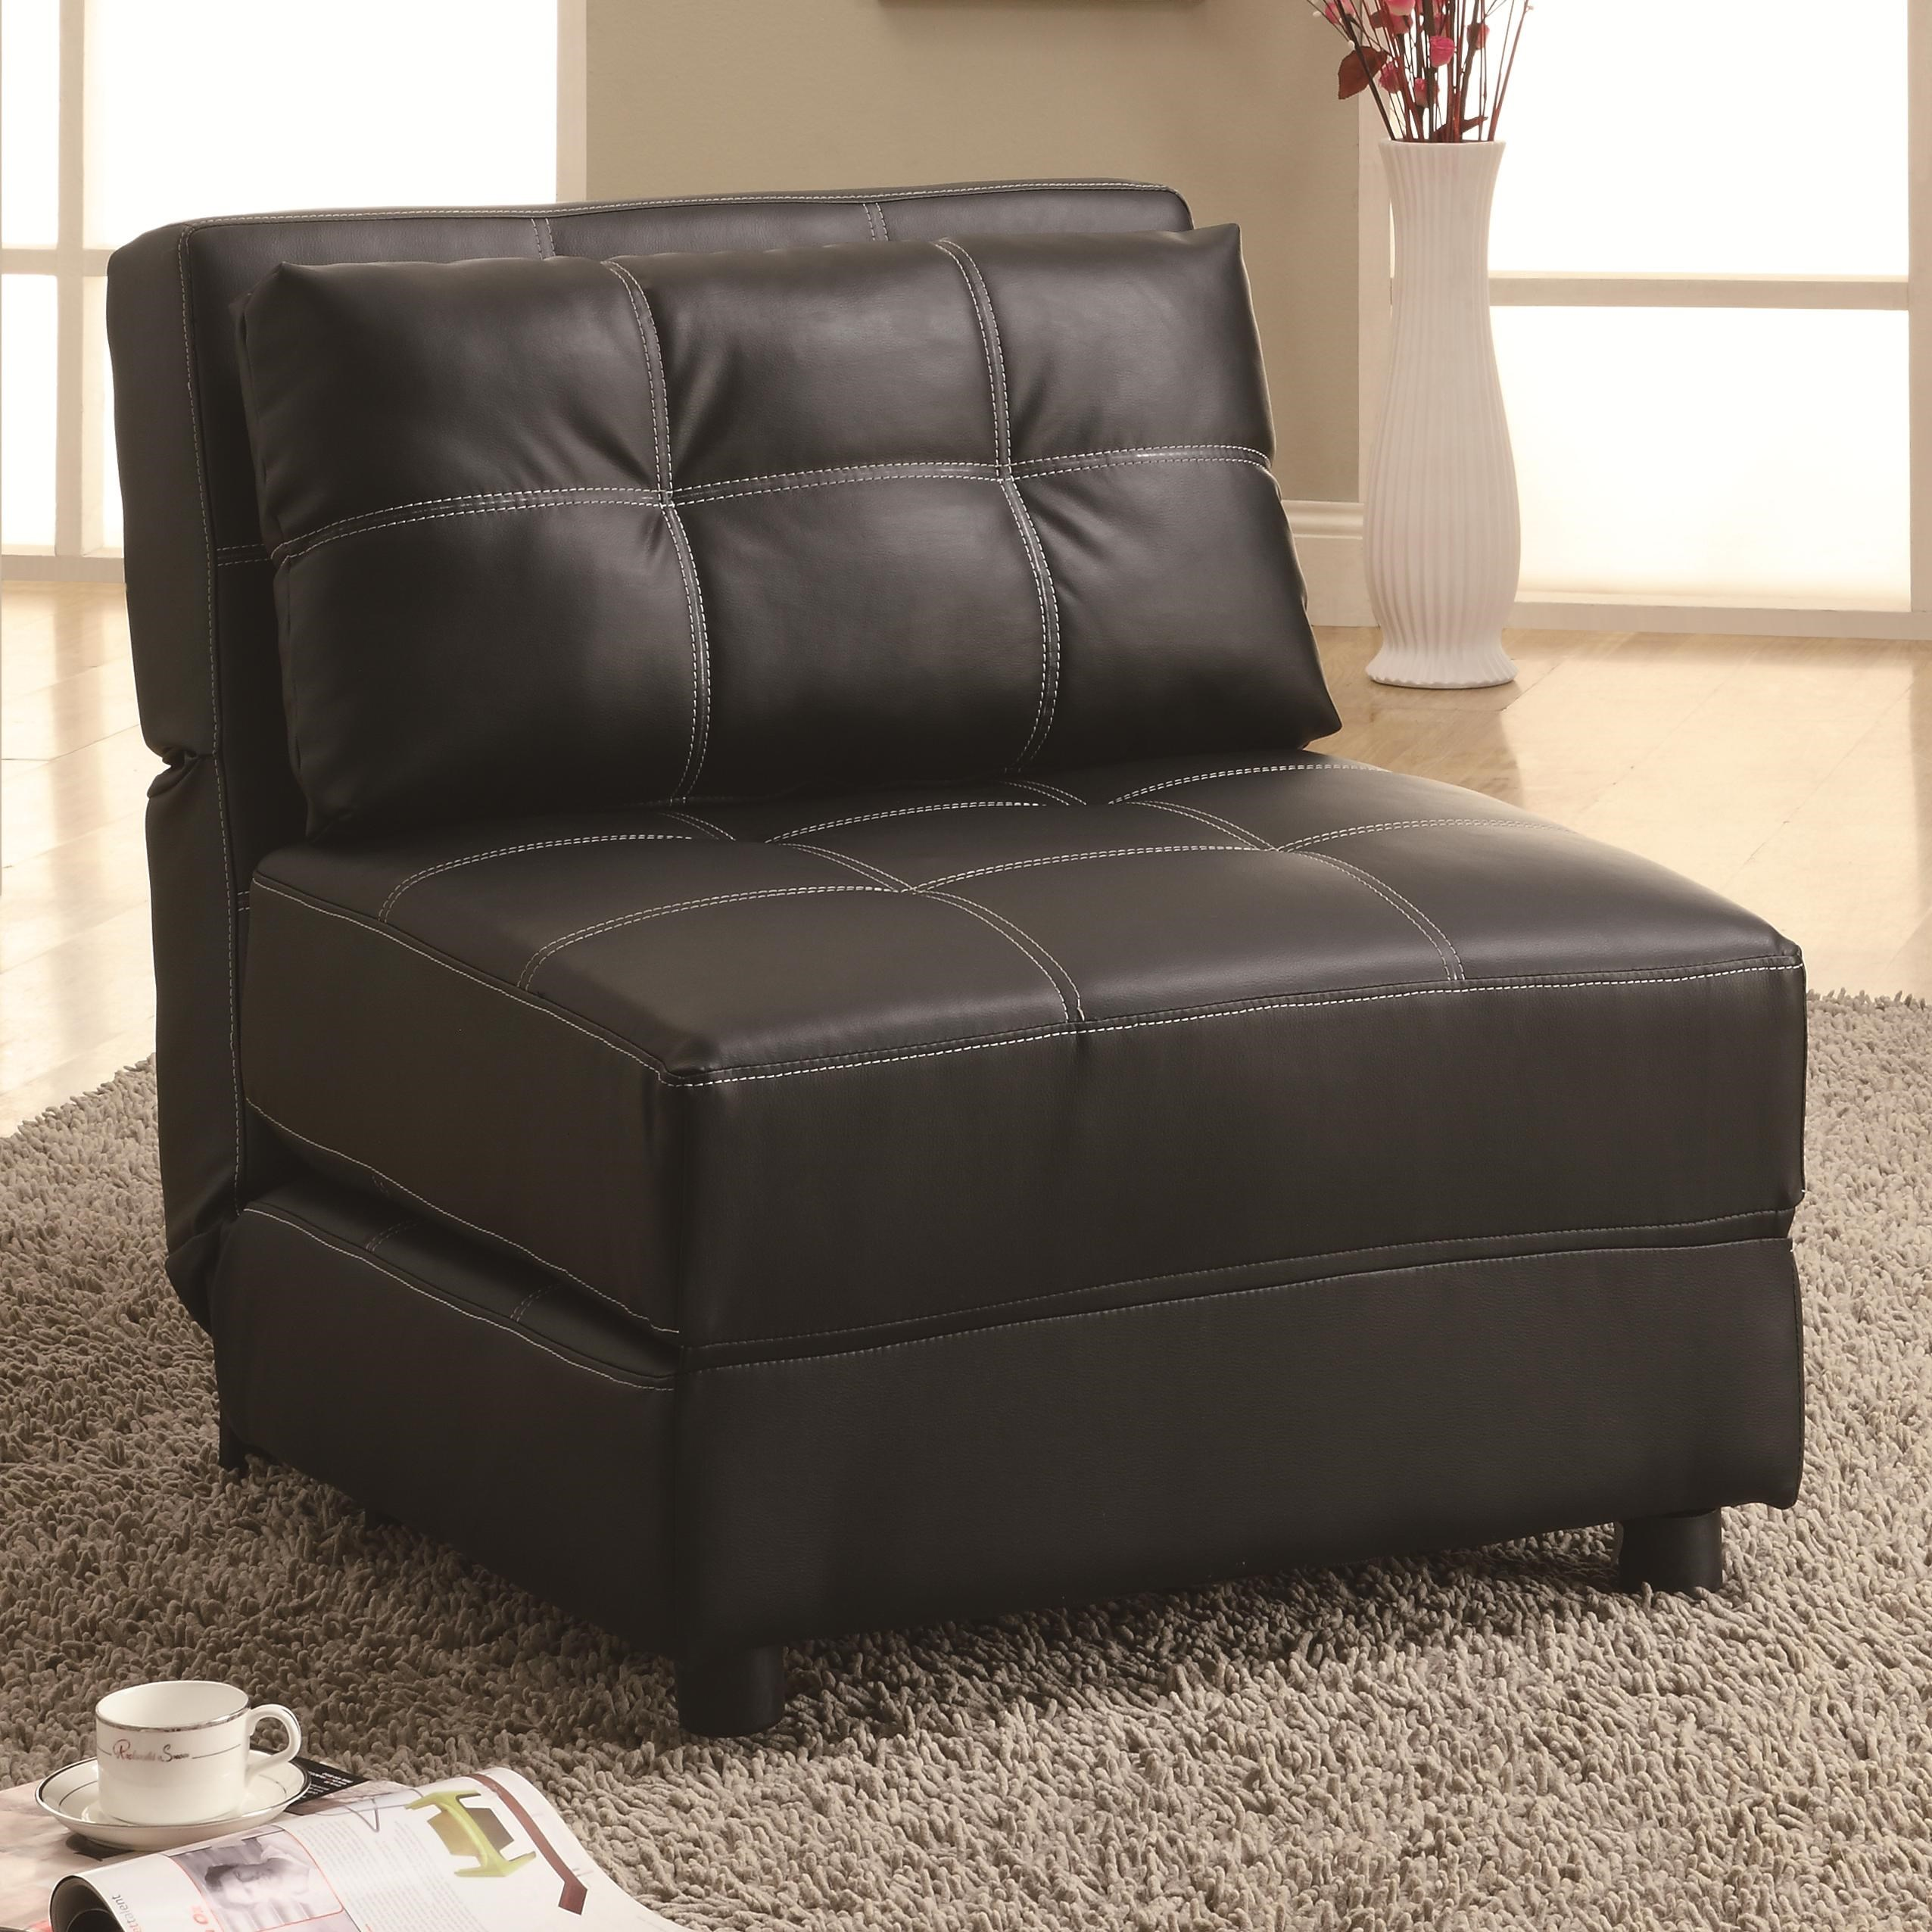 Versatility Bedroom Lounge Chairs Accent Seating Contemporary Armless Lounge Chair-Sofa Bed by Coaster